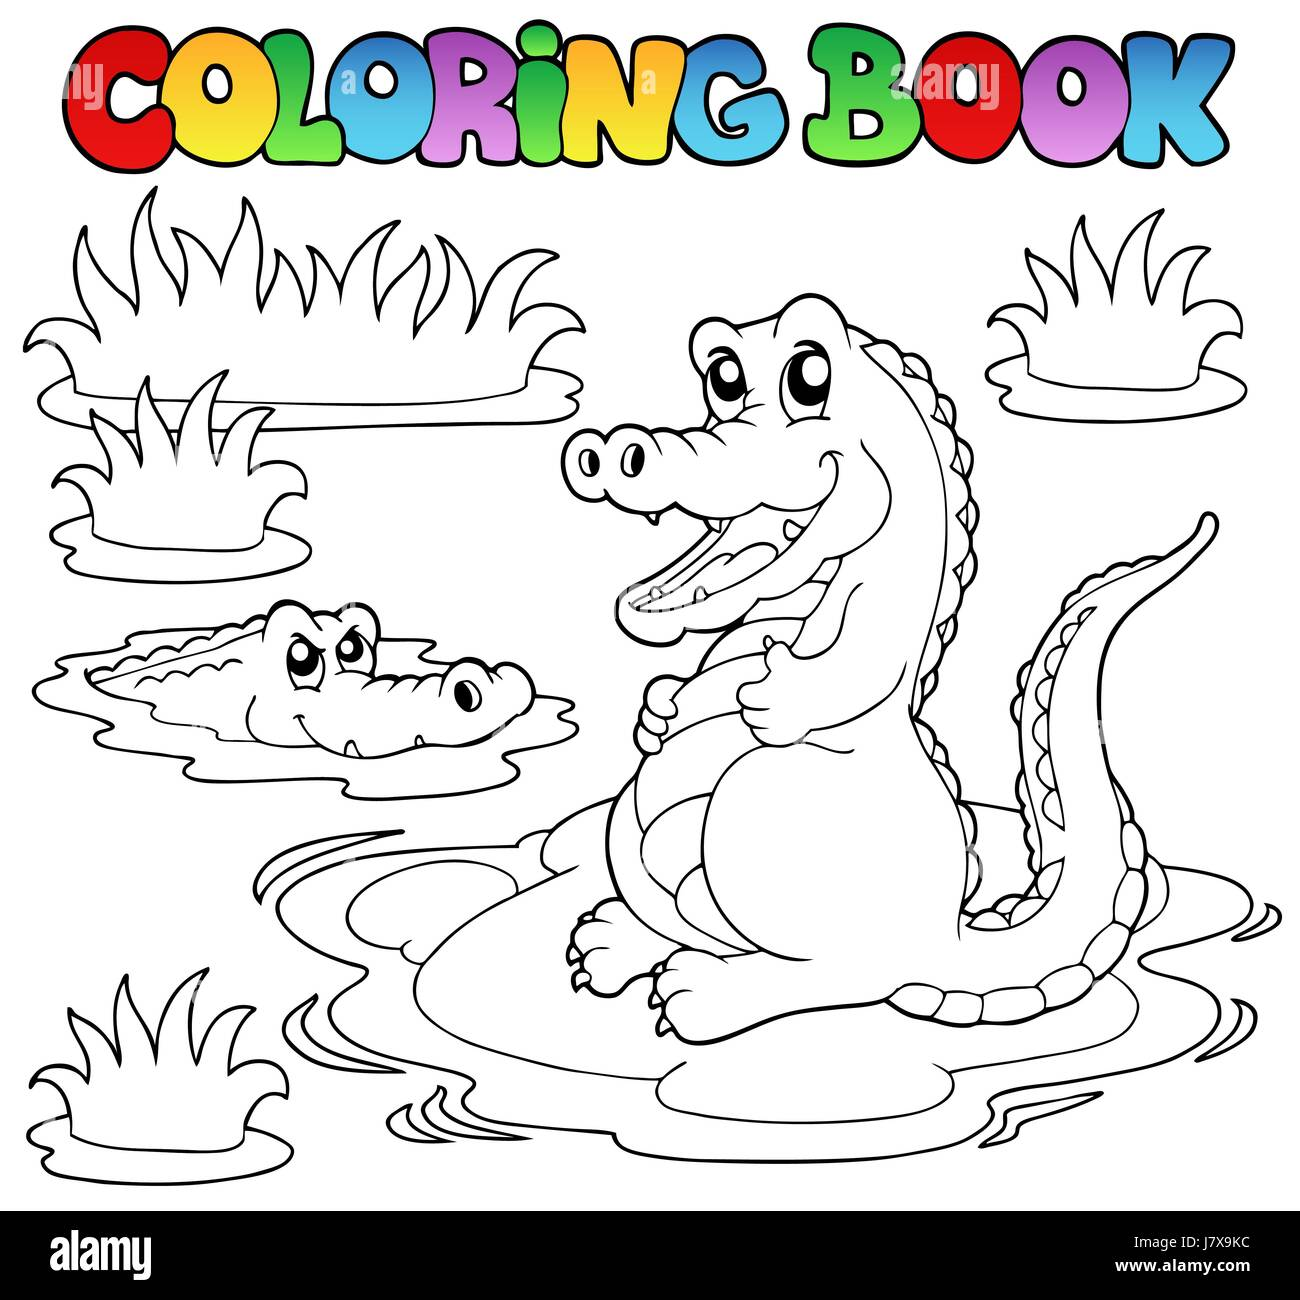 click the crocodile color by number. crocodiles colour drawing hd ...